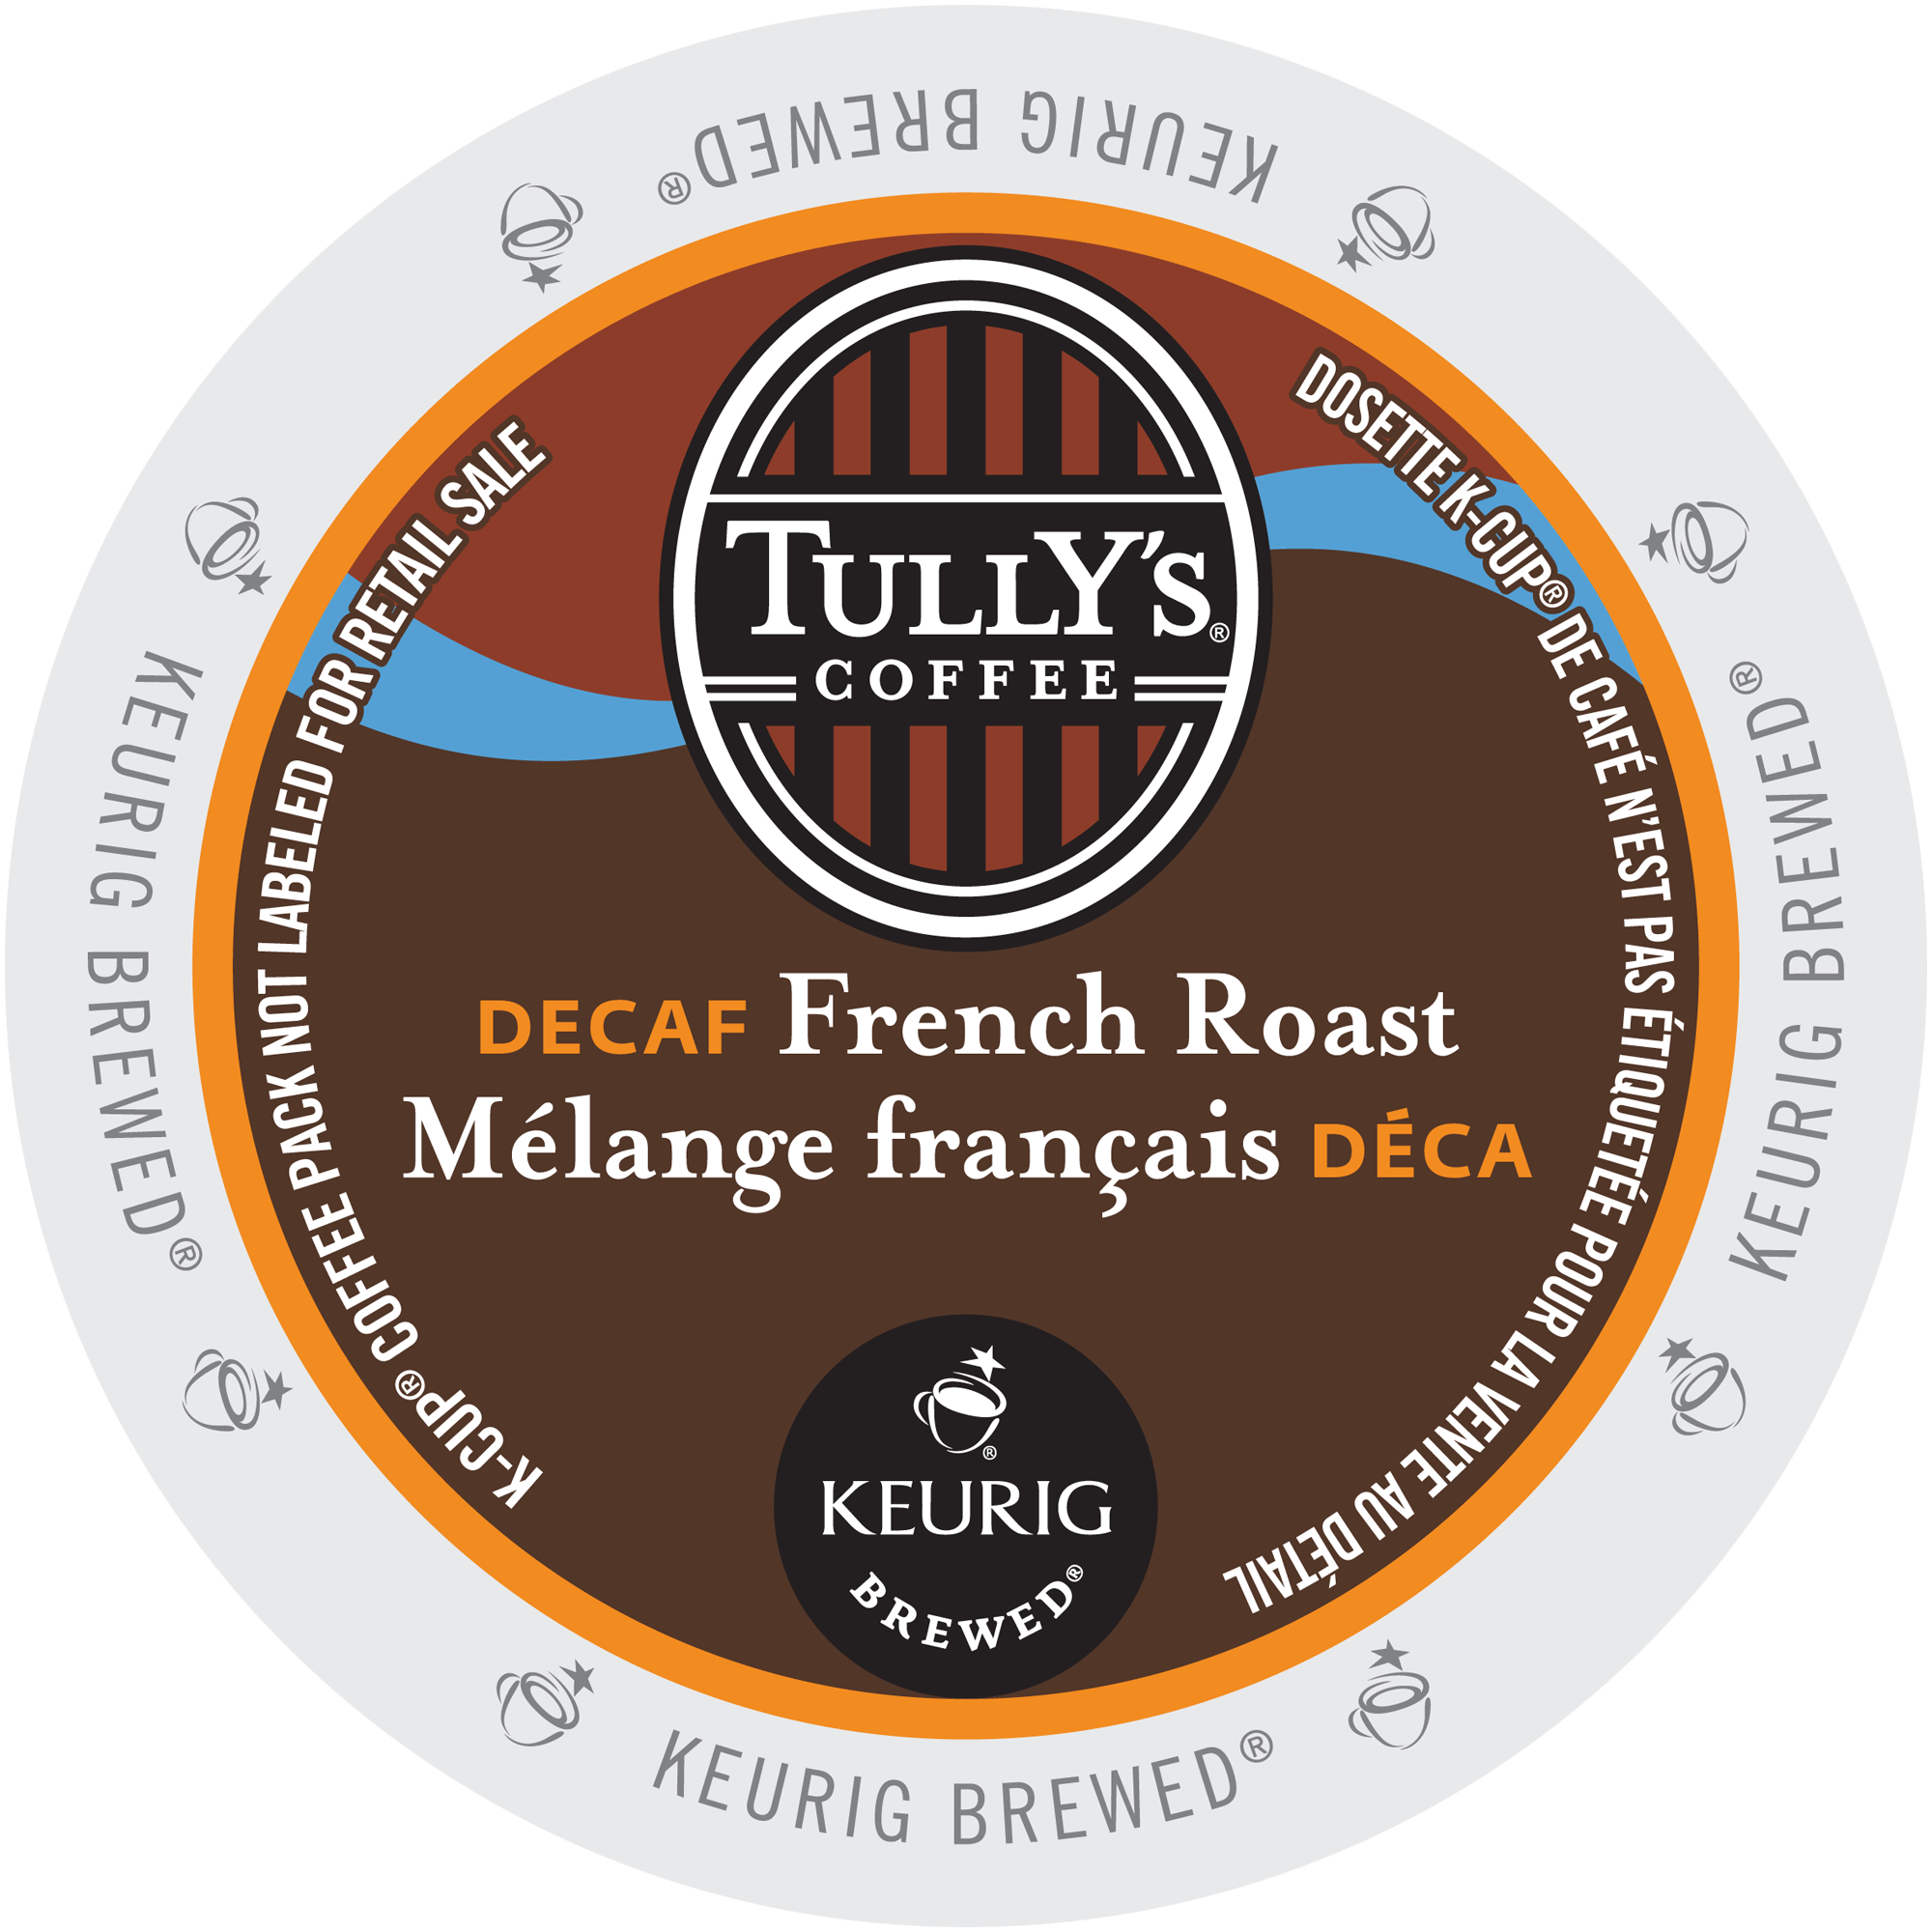 french-roast-decaf-coffee-tullys-k-cup_ca_general (1)